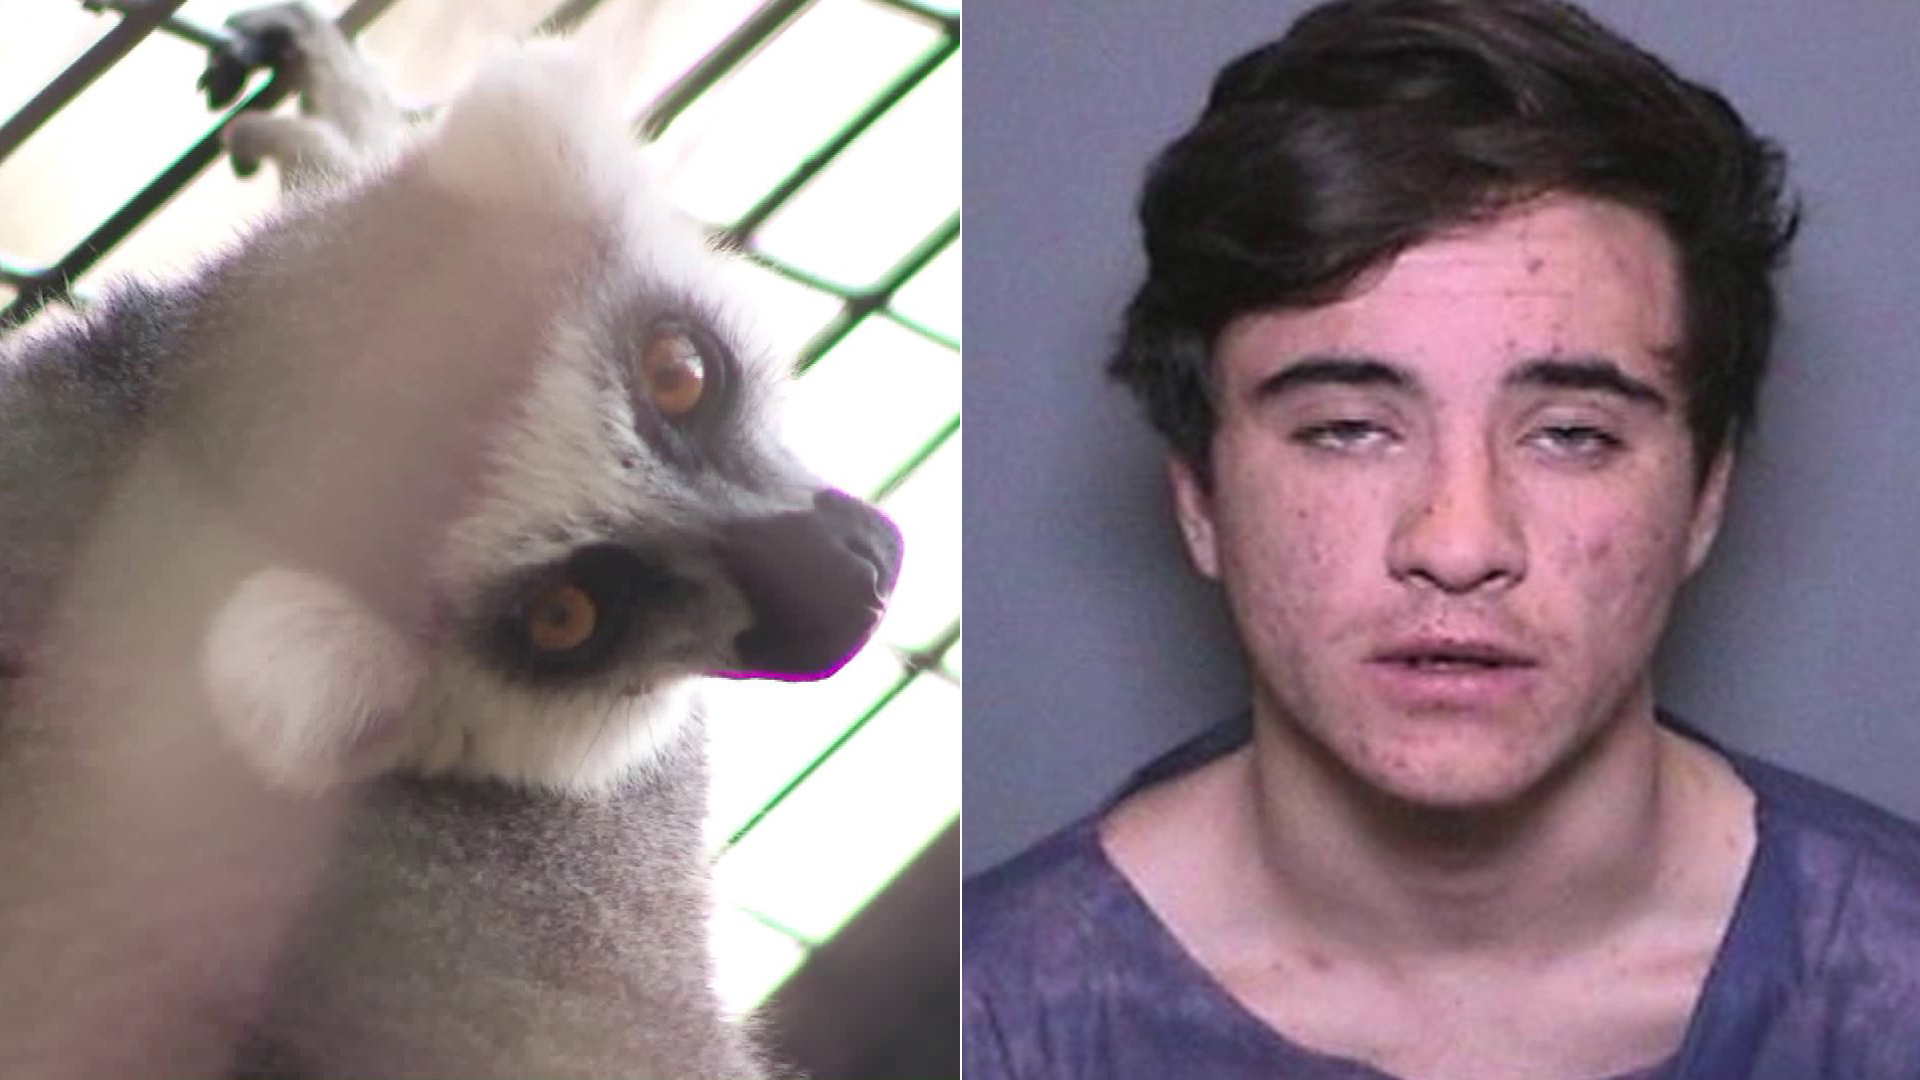 A lemur, left, was stolen from the Santa Ana Zoo last year and found abandoned at a Newport Beach hotel. Quinn Kasbar, 19, of Newport Beach, who is charged in a spate of residential burglaries, is a suspect in the lemur case, according to police. Both are seen in file photos.